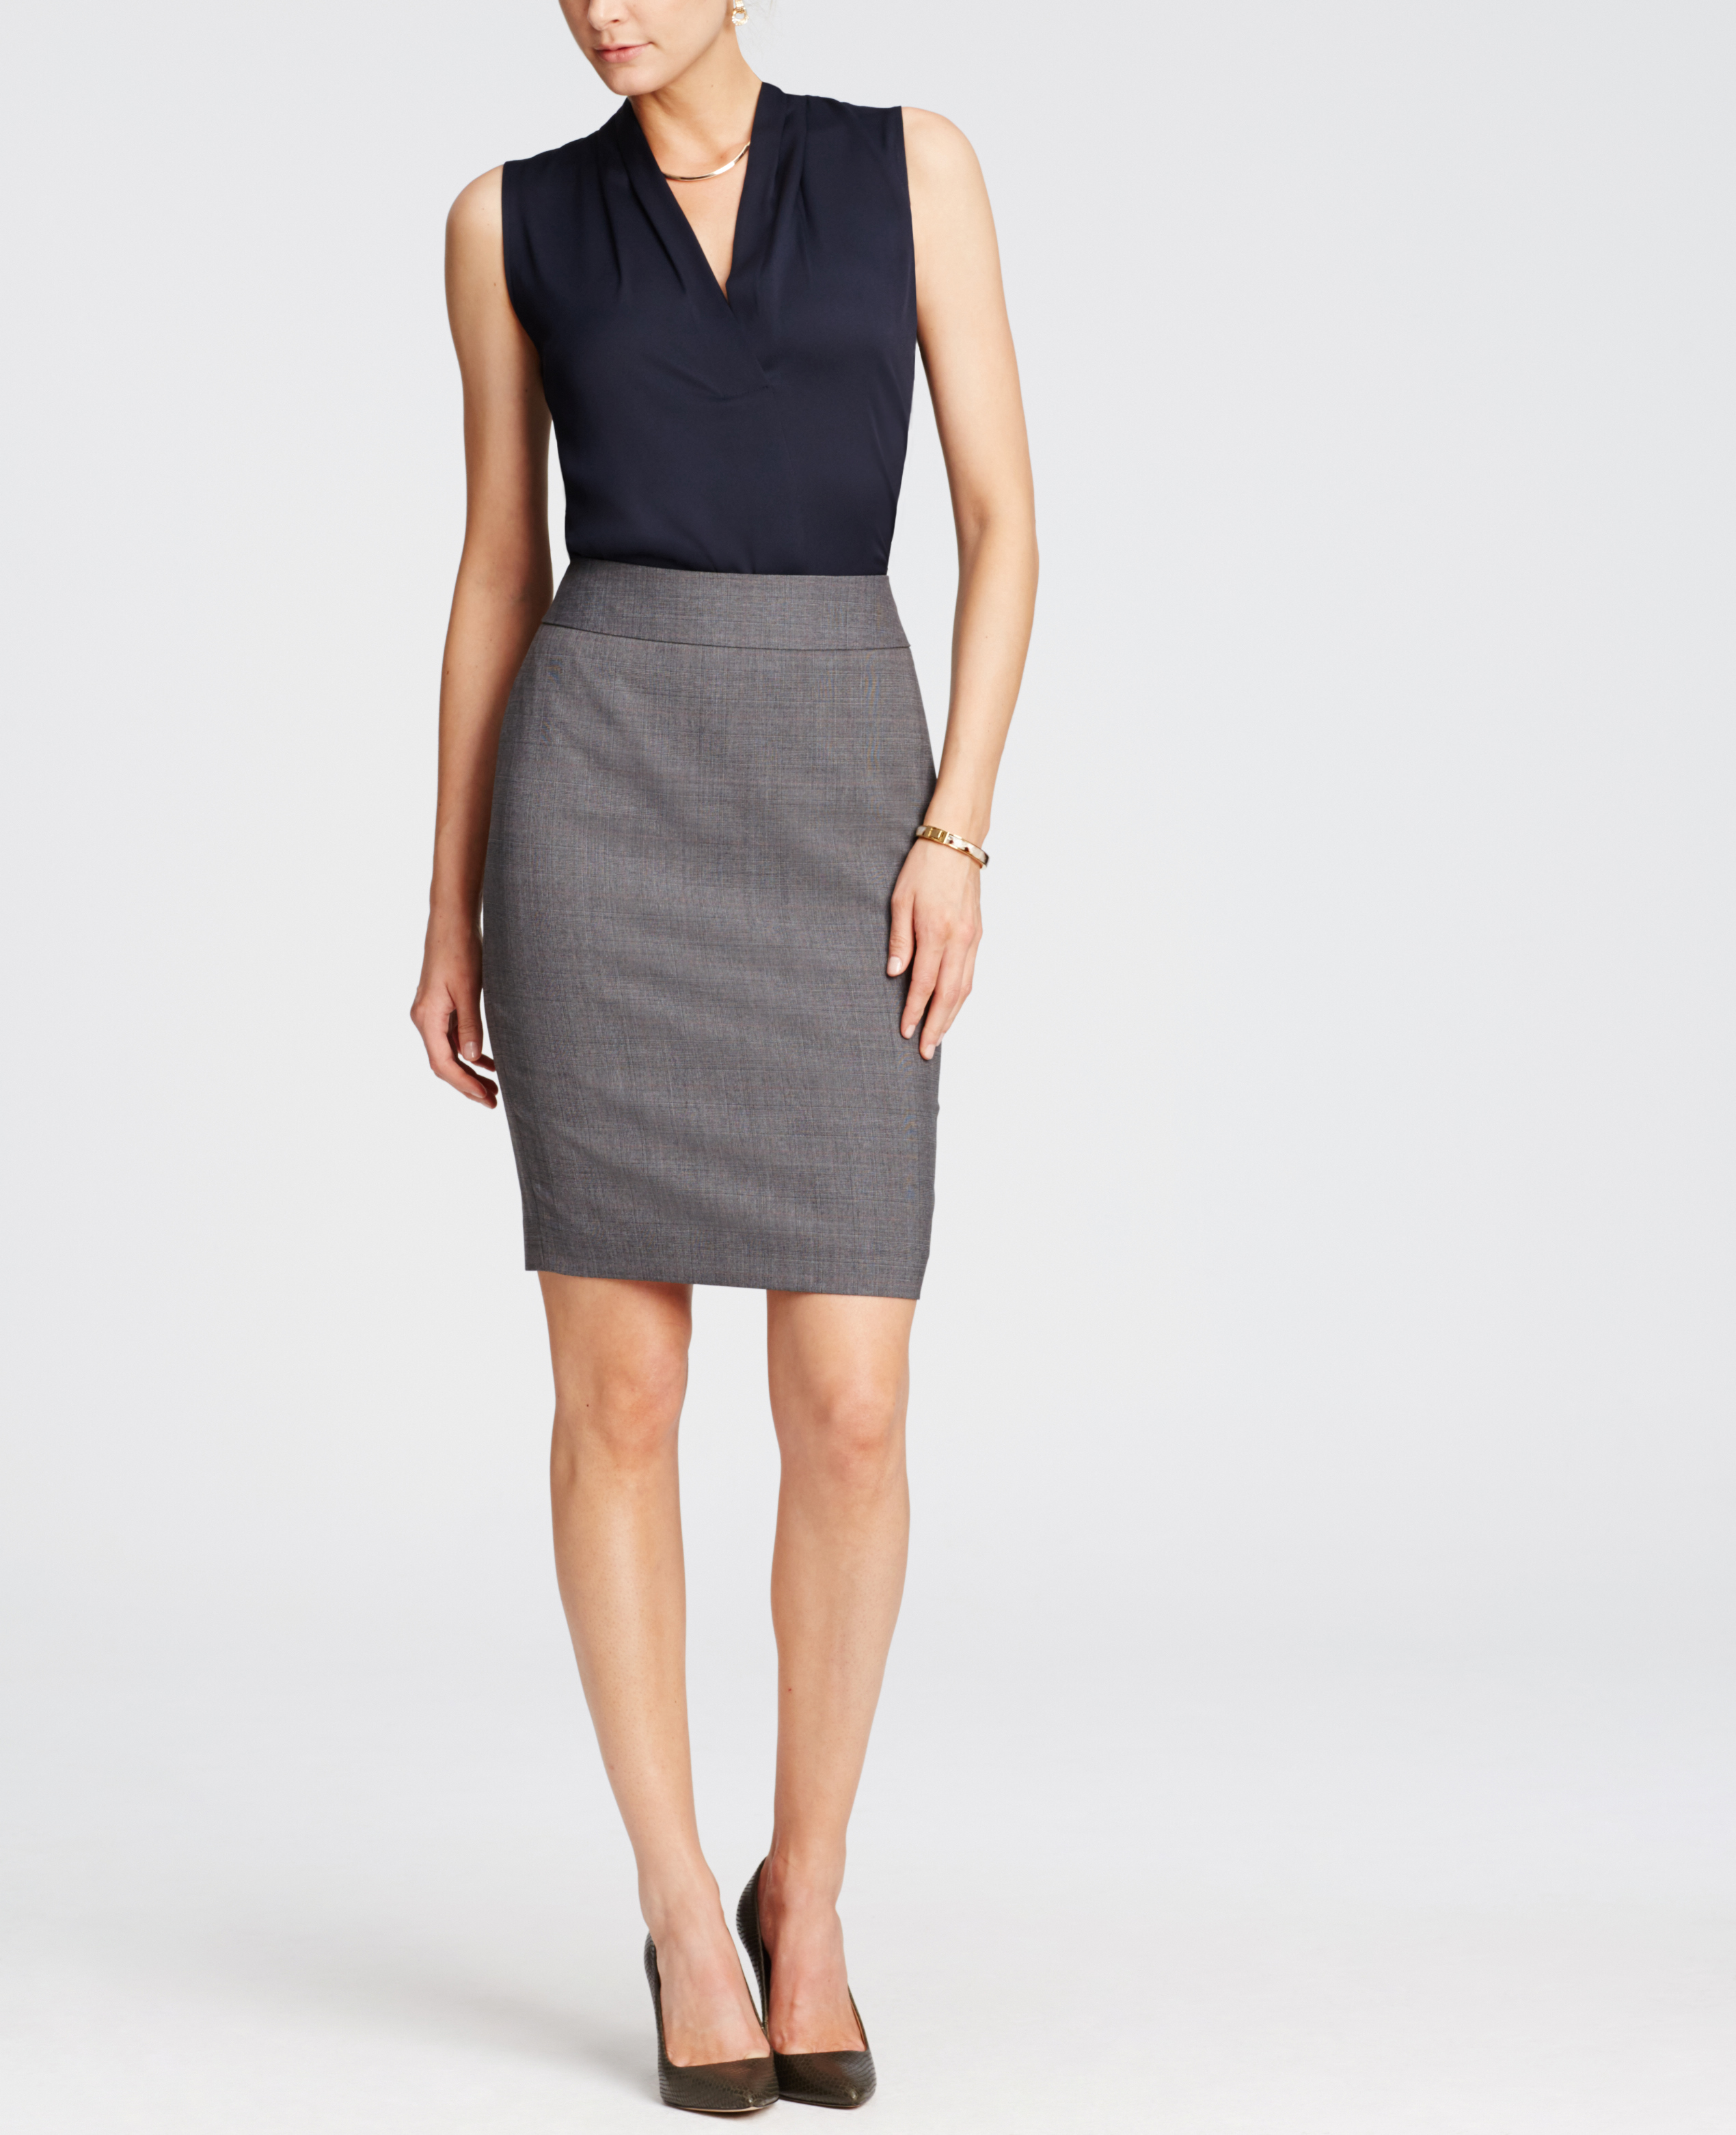 Shop for petite skirts at New York & Company. Choose from our collection of women's petite skirts, including pencil skirts, maxi skirts and more. Skirts. Today Online Only Everything Buy More, Save More! 50% Off Any 4+ Items, 40% Off Any 3 Items, or 30% Off Any 1 or 2 .